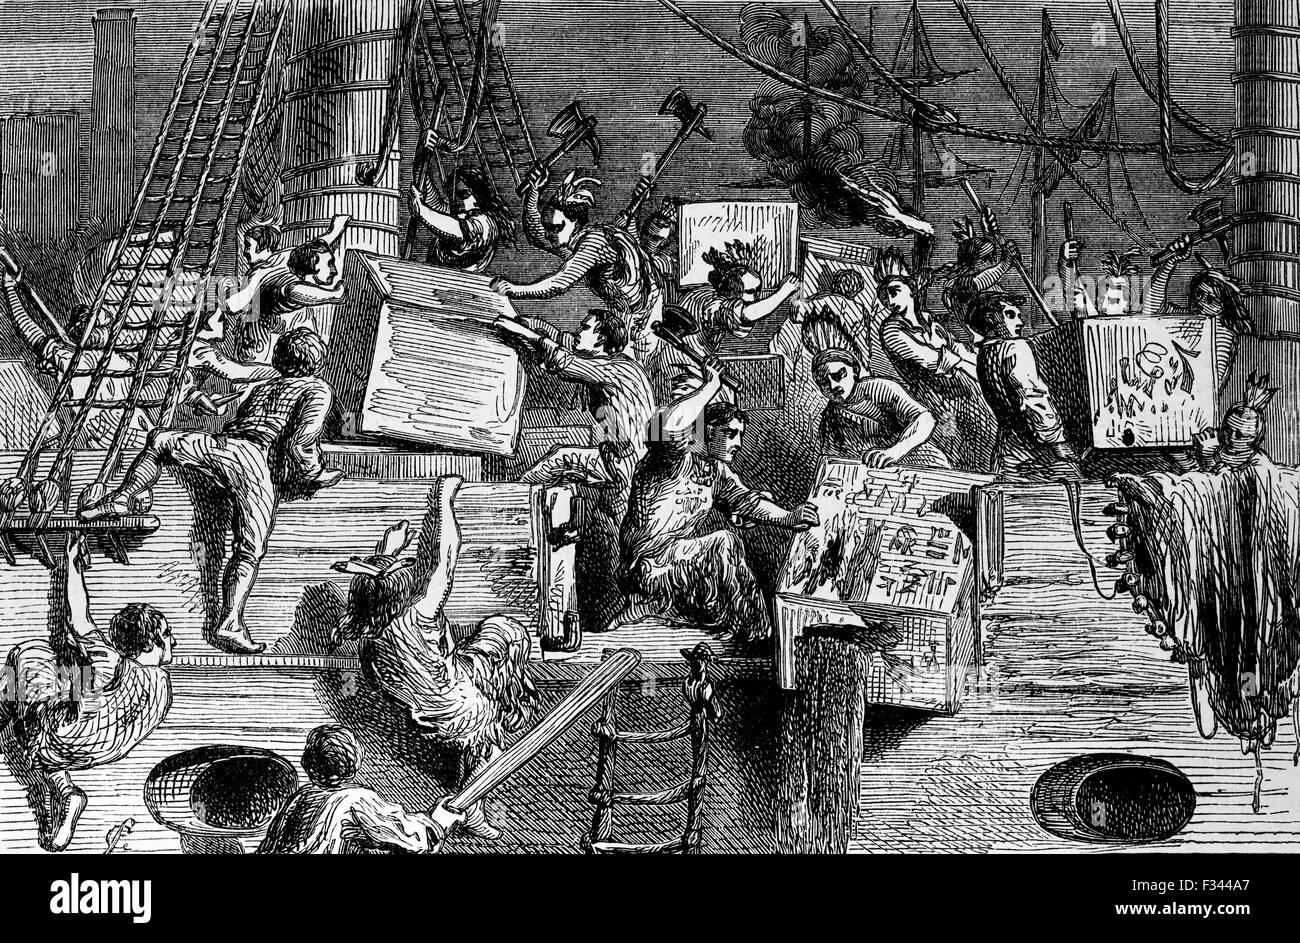 CONTROLLING EAST INDIA COMPANYThe Boston Tea Party was a political protest by the Sons of Liberty in Boston, in - Stock Image